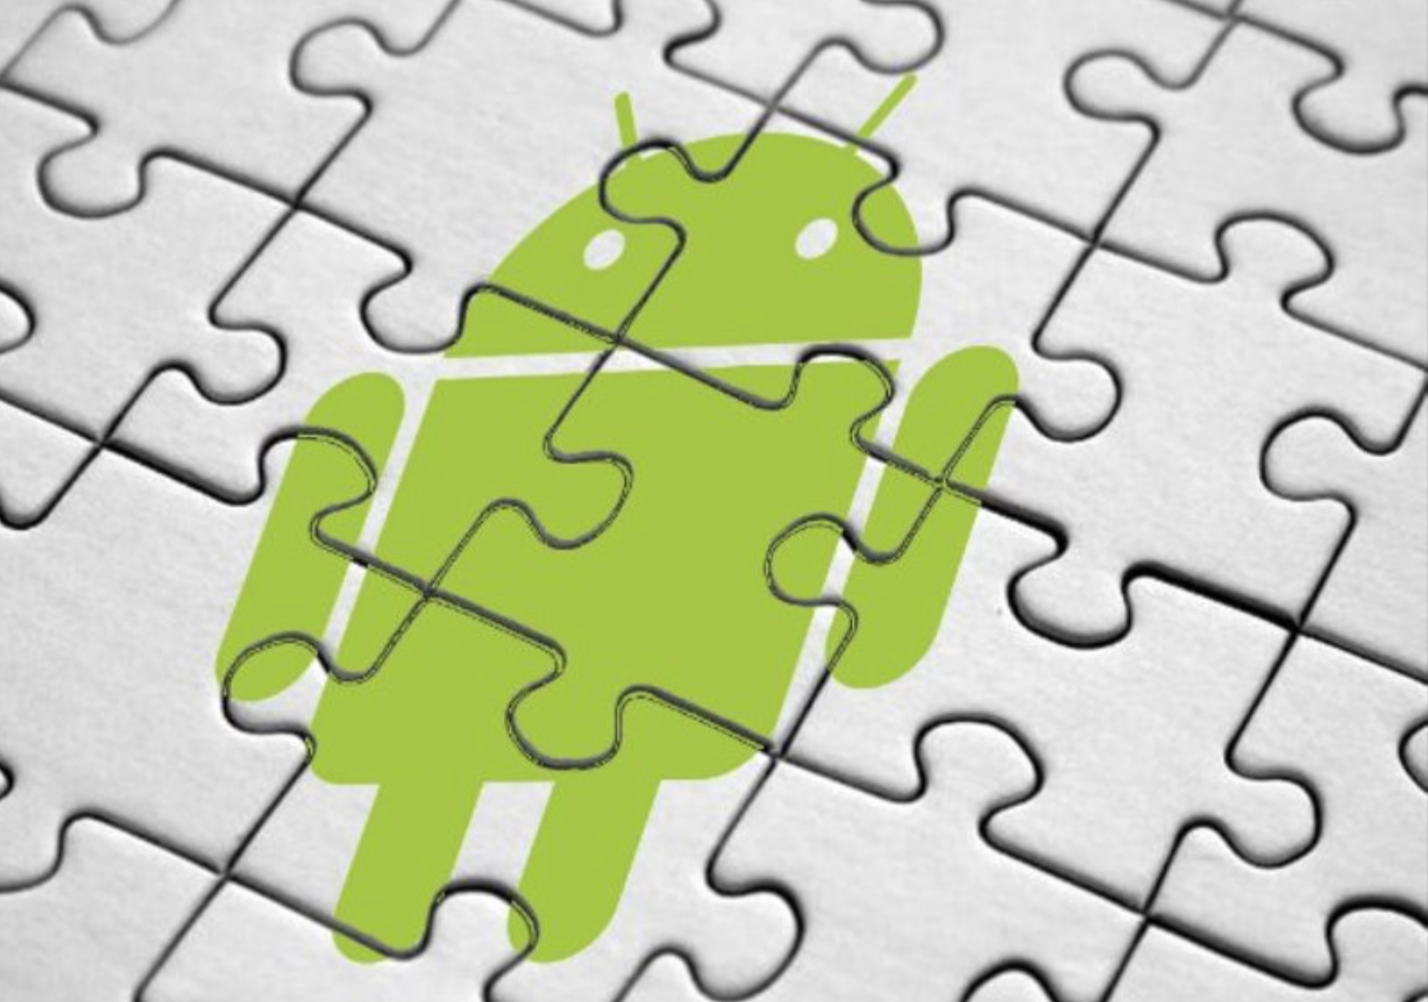 NBD91K Android 7 november security patch